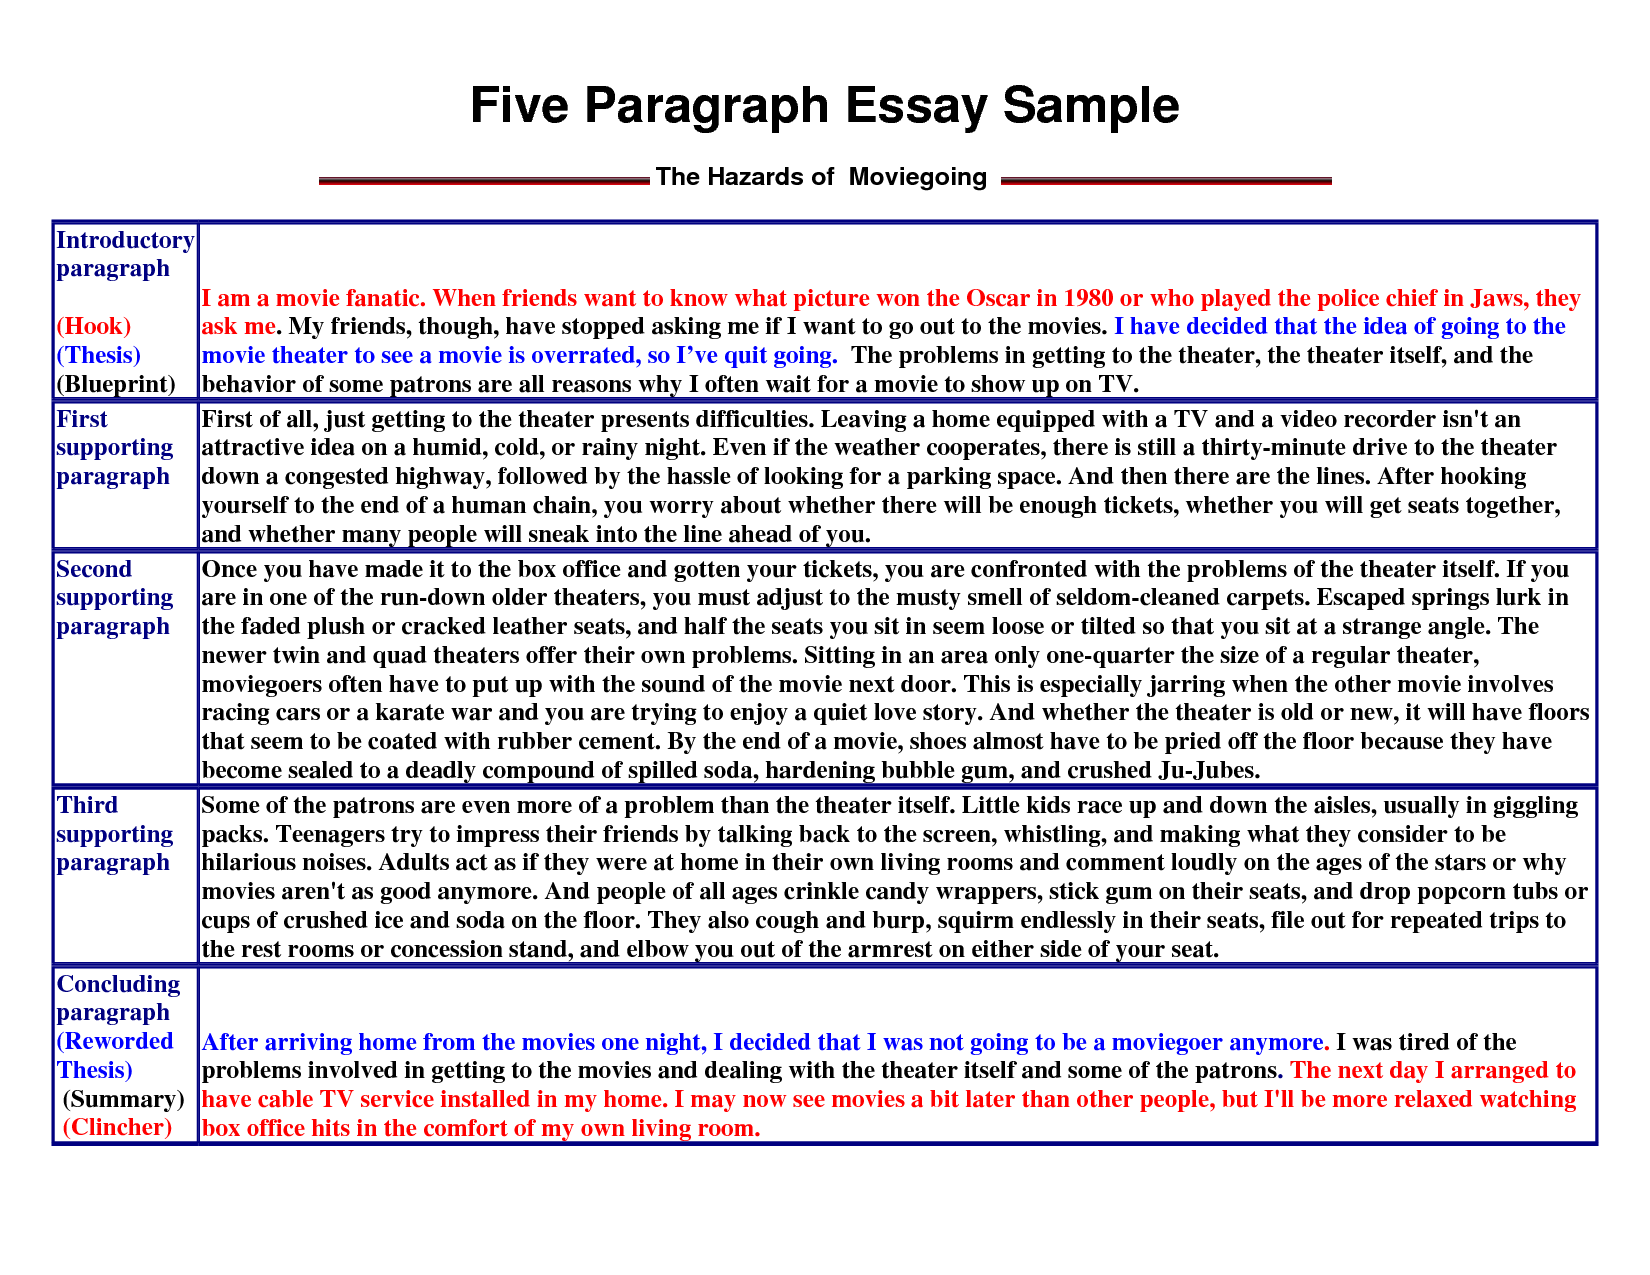 write a leadership essay Application essay guidelines this is why we ask prospective students to write an essay about demonstrated leadership when they apply to our school.